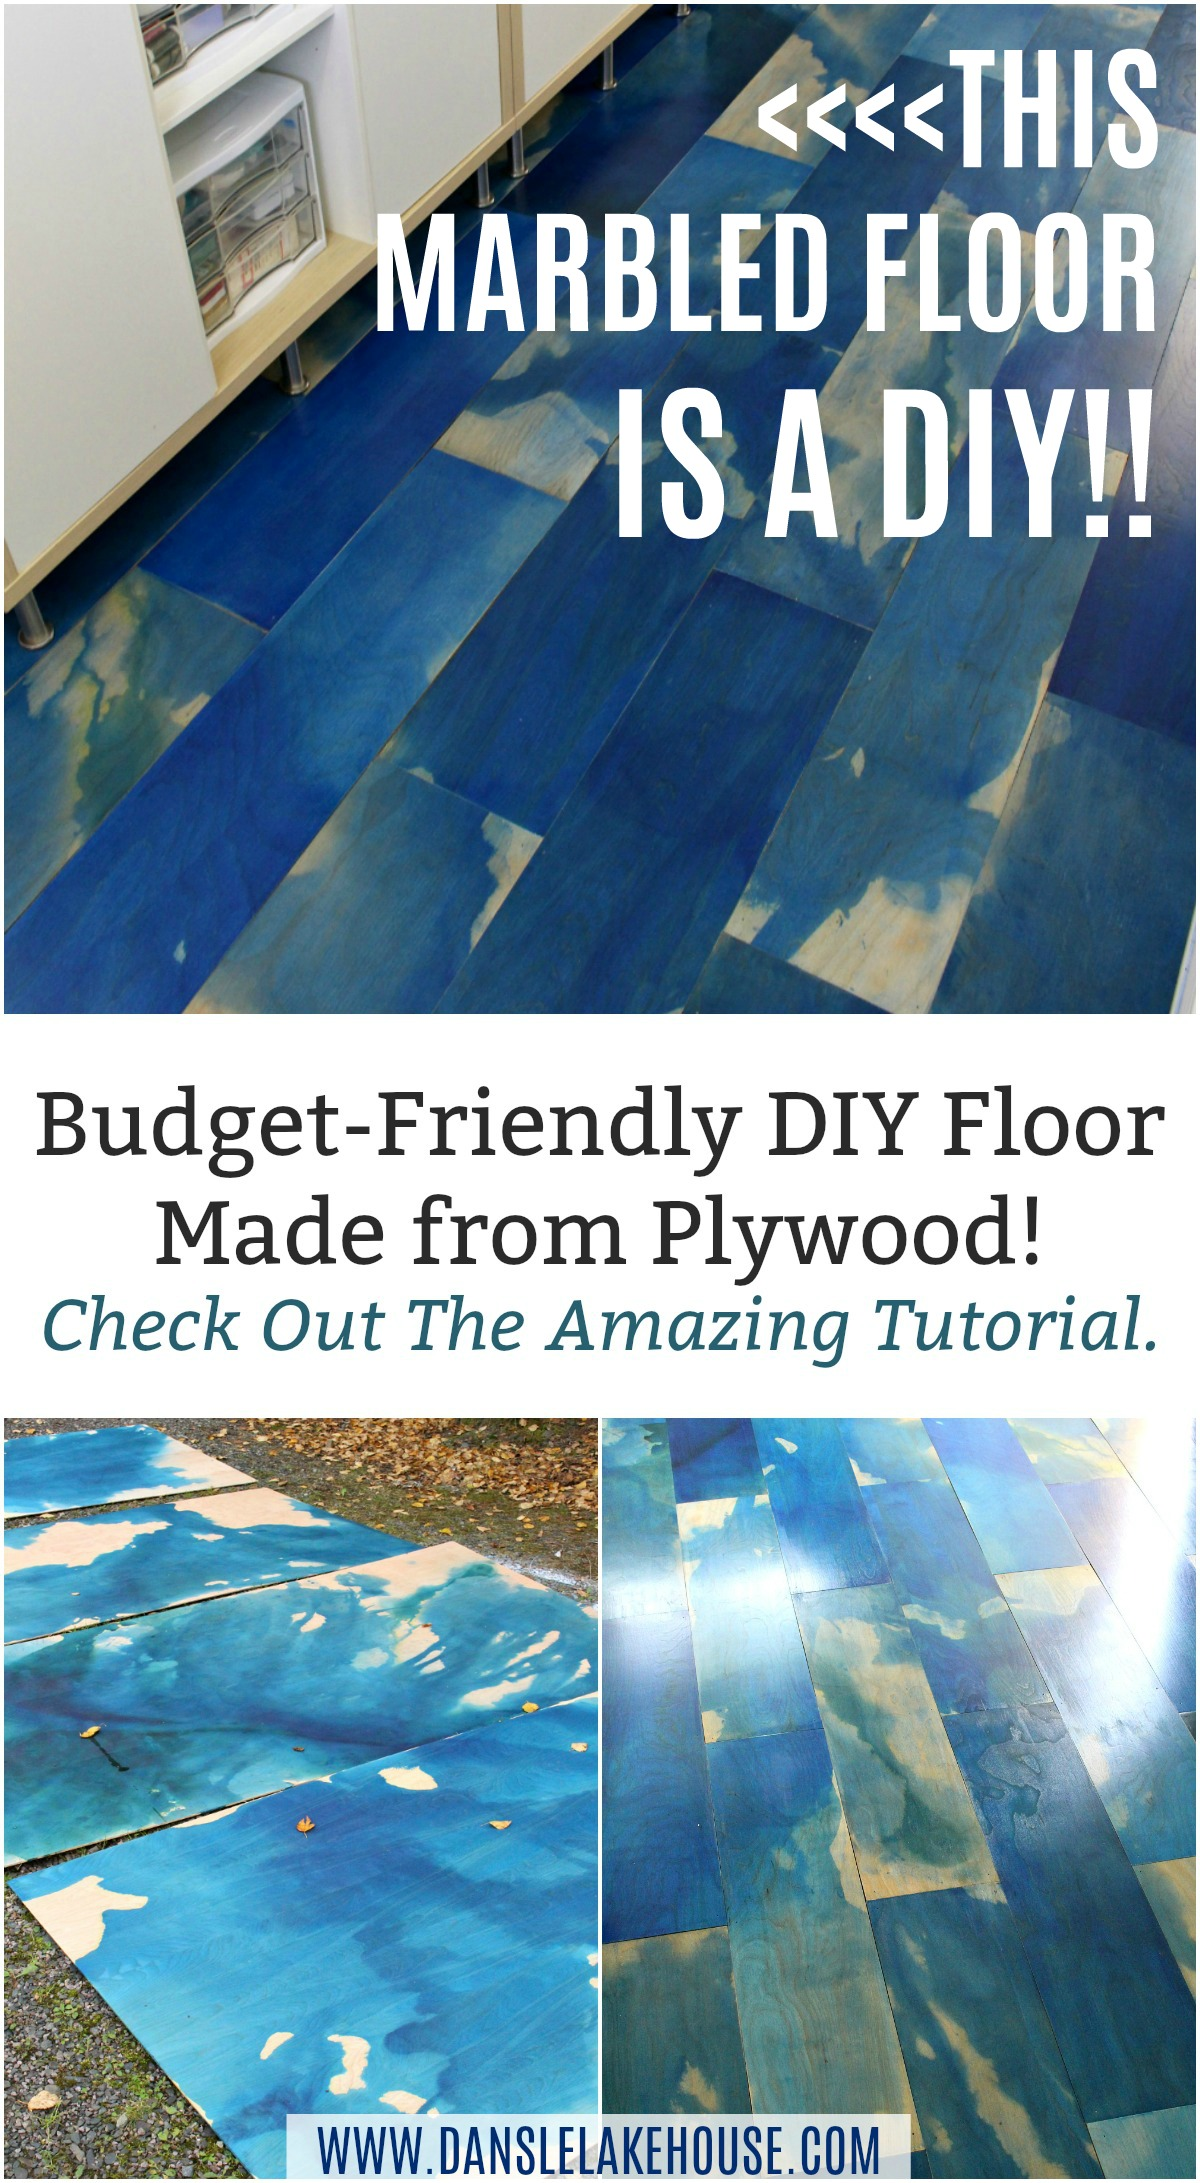 Learn how to make this AMAZINGLY COOL DIY Plywood Floor Using a Special Marbling Technique for Plywood. It's Surprisingly Easy, and a Budget Friendly Floor Idea. Make This DIY Floor in a Weekend! #diyflooring #plywood #diy #marbled #diyfloor